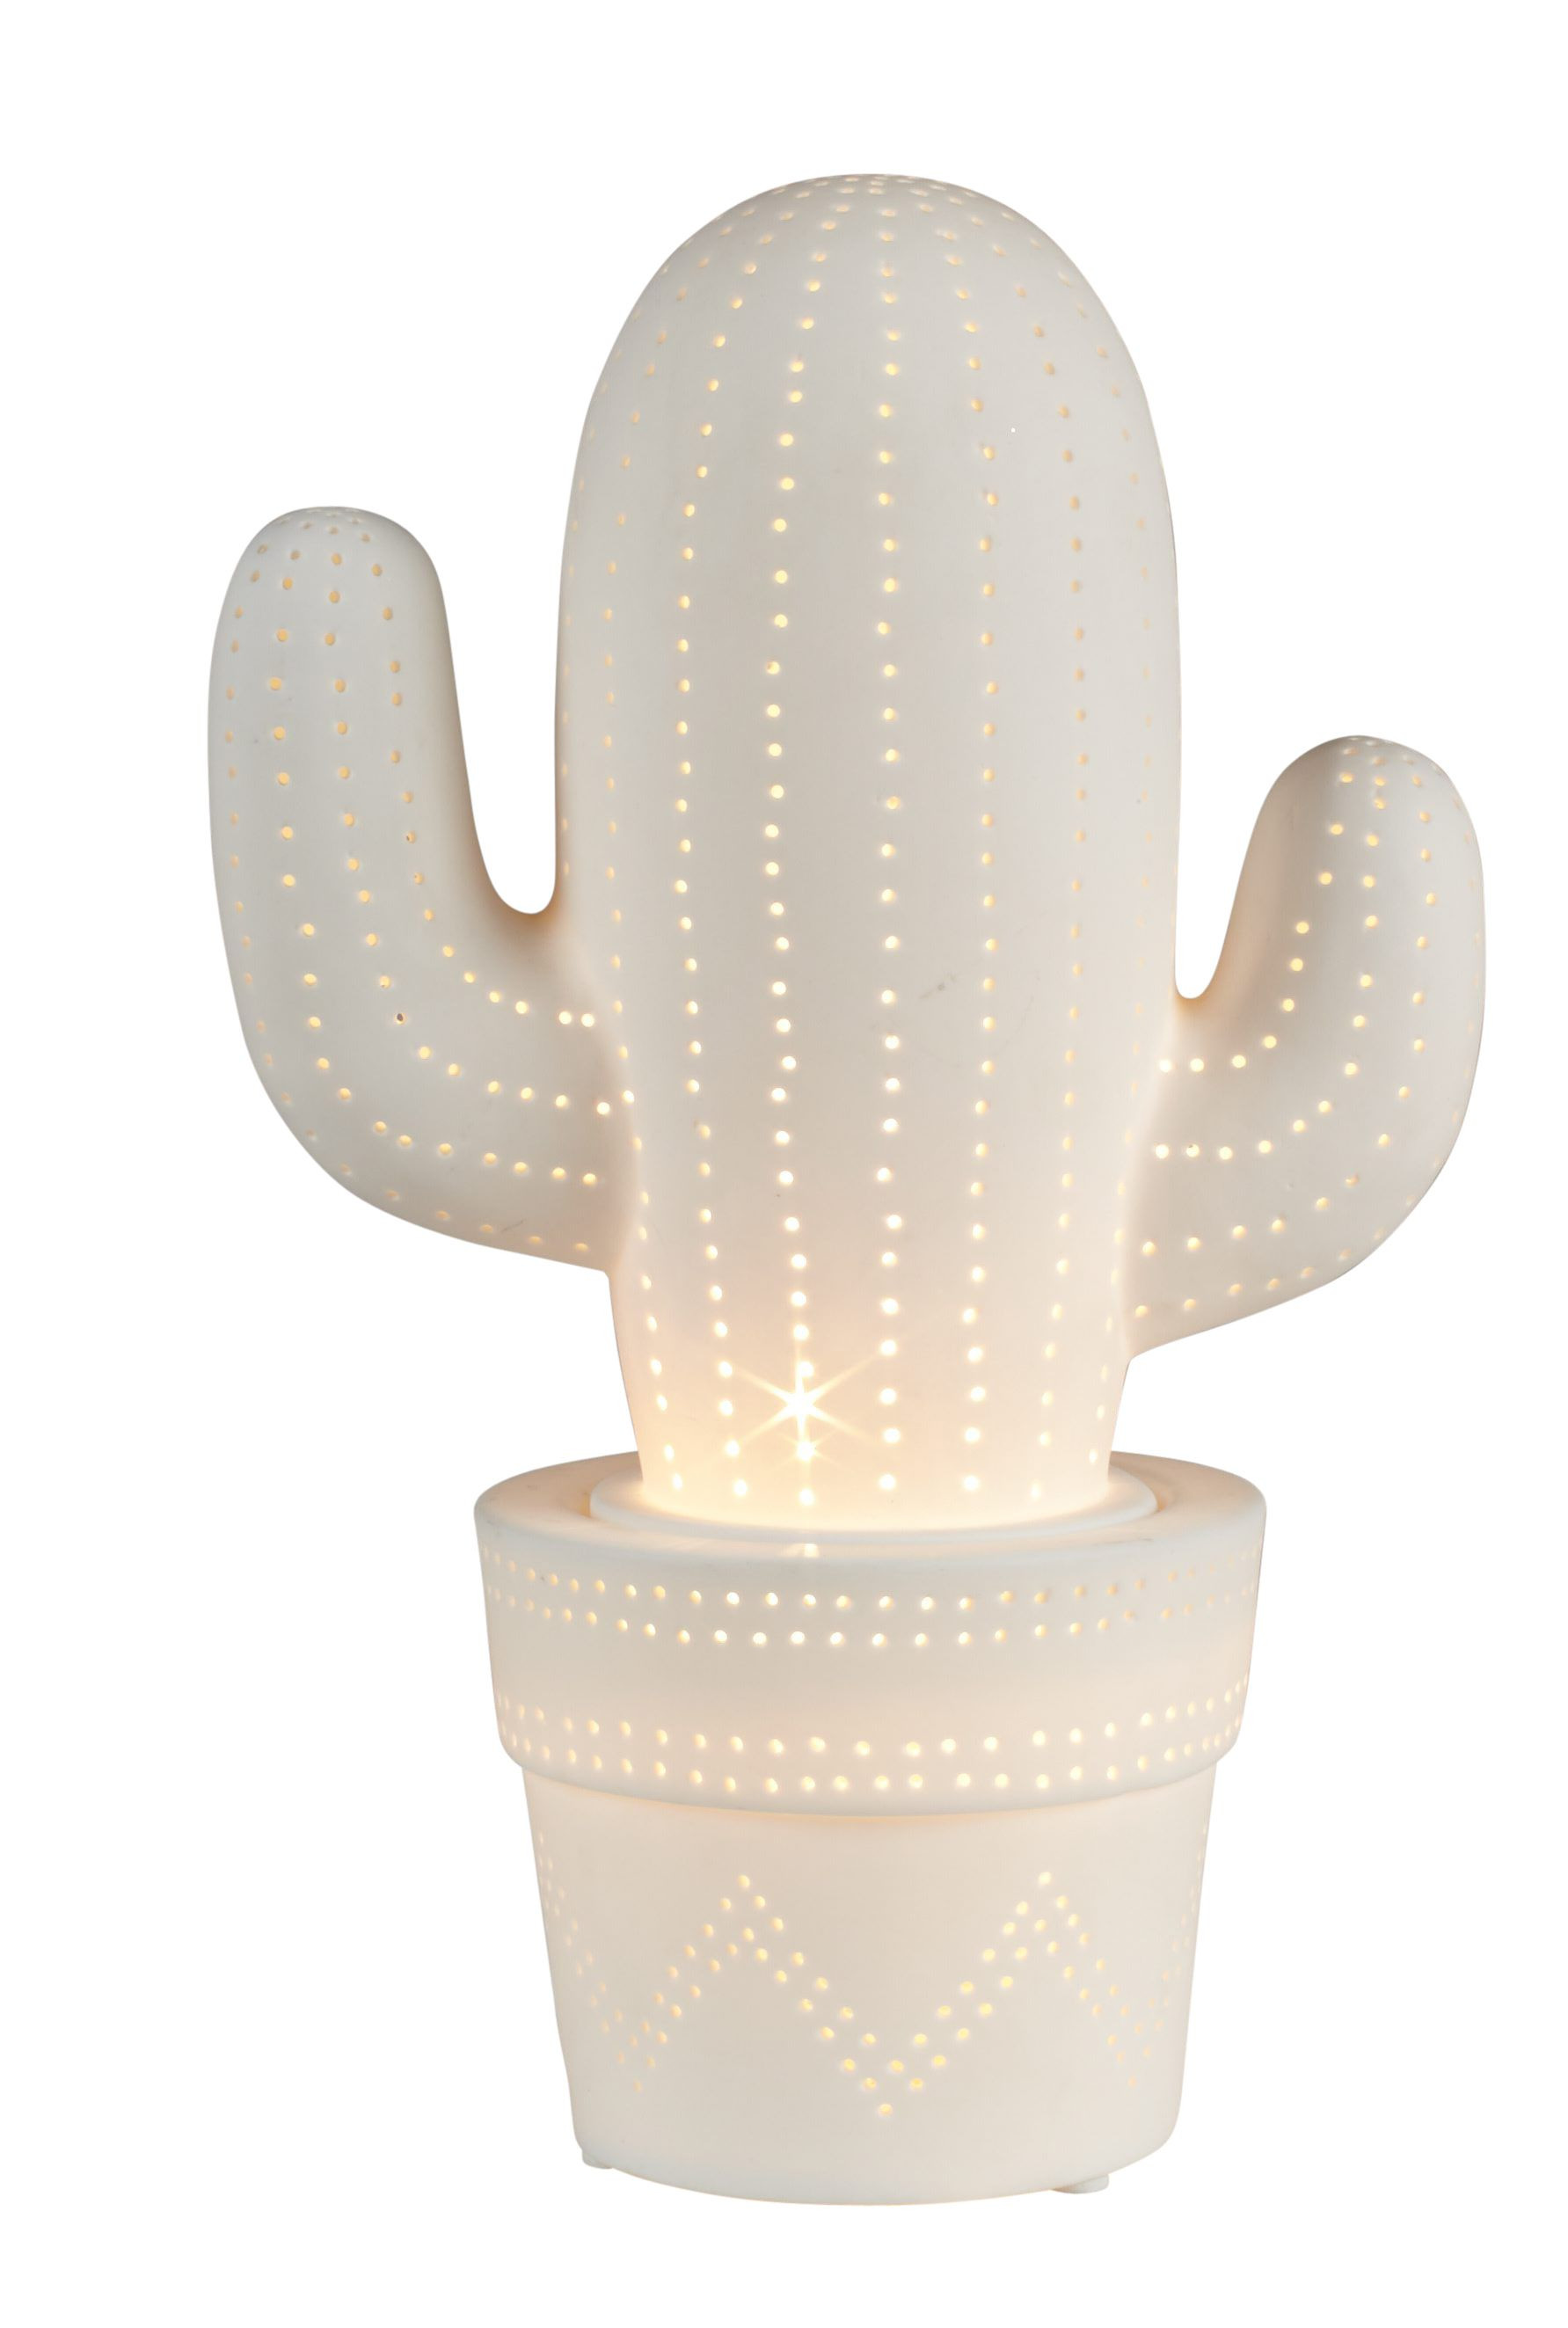 serax cactus vase of lampe a poser cactus blanc light em up pinterest cactus regarding lampe a poser cactus but